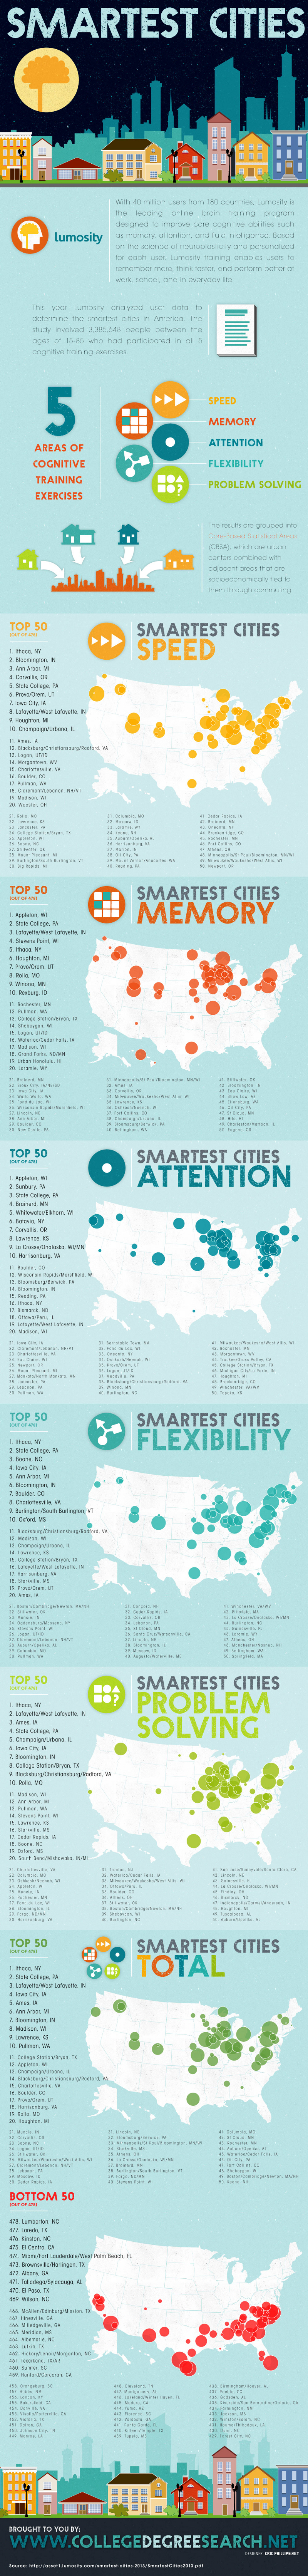 Smartest-Cities-in-the-United-States